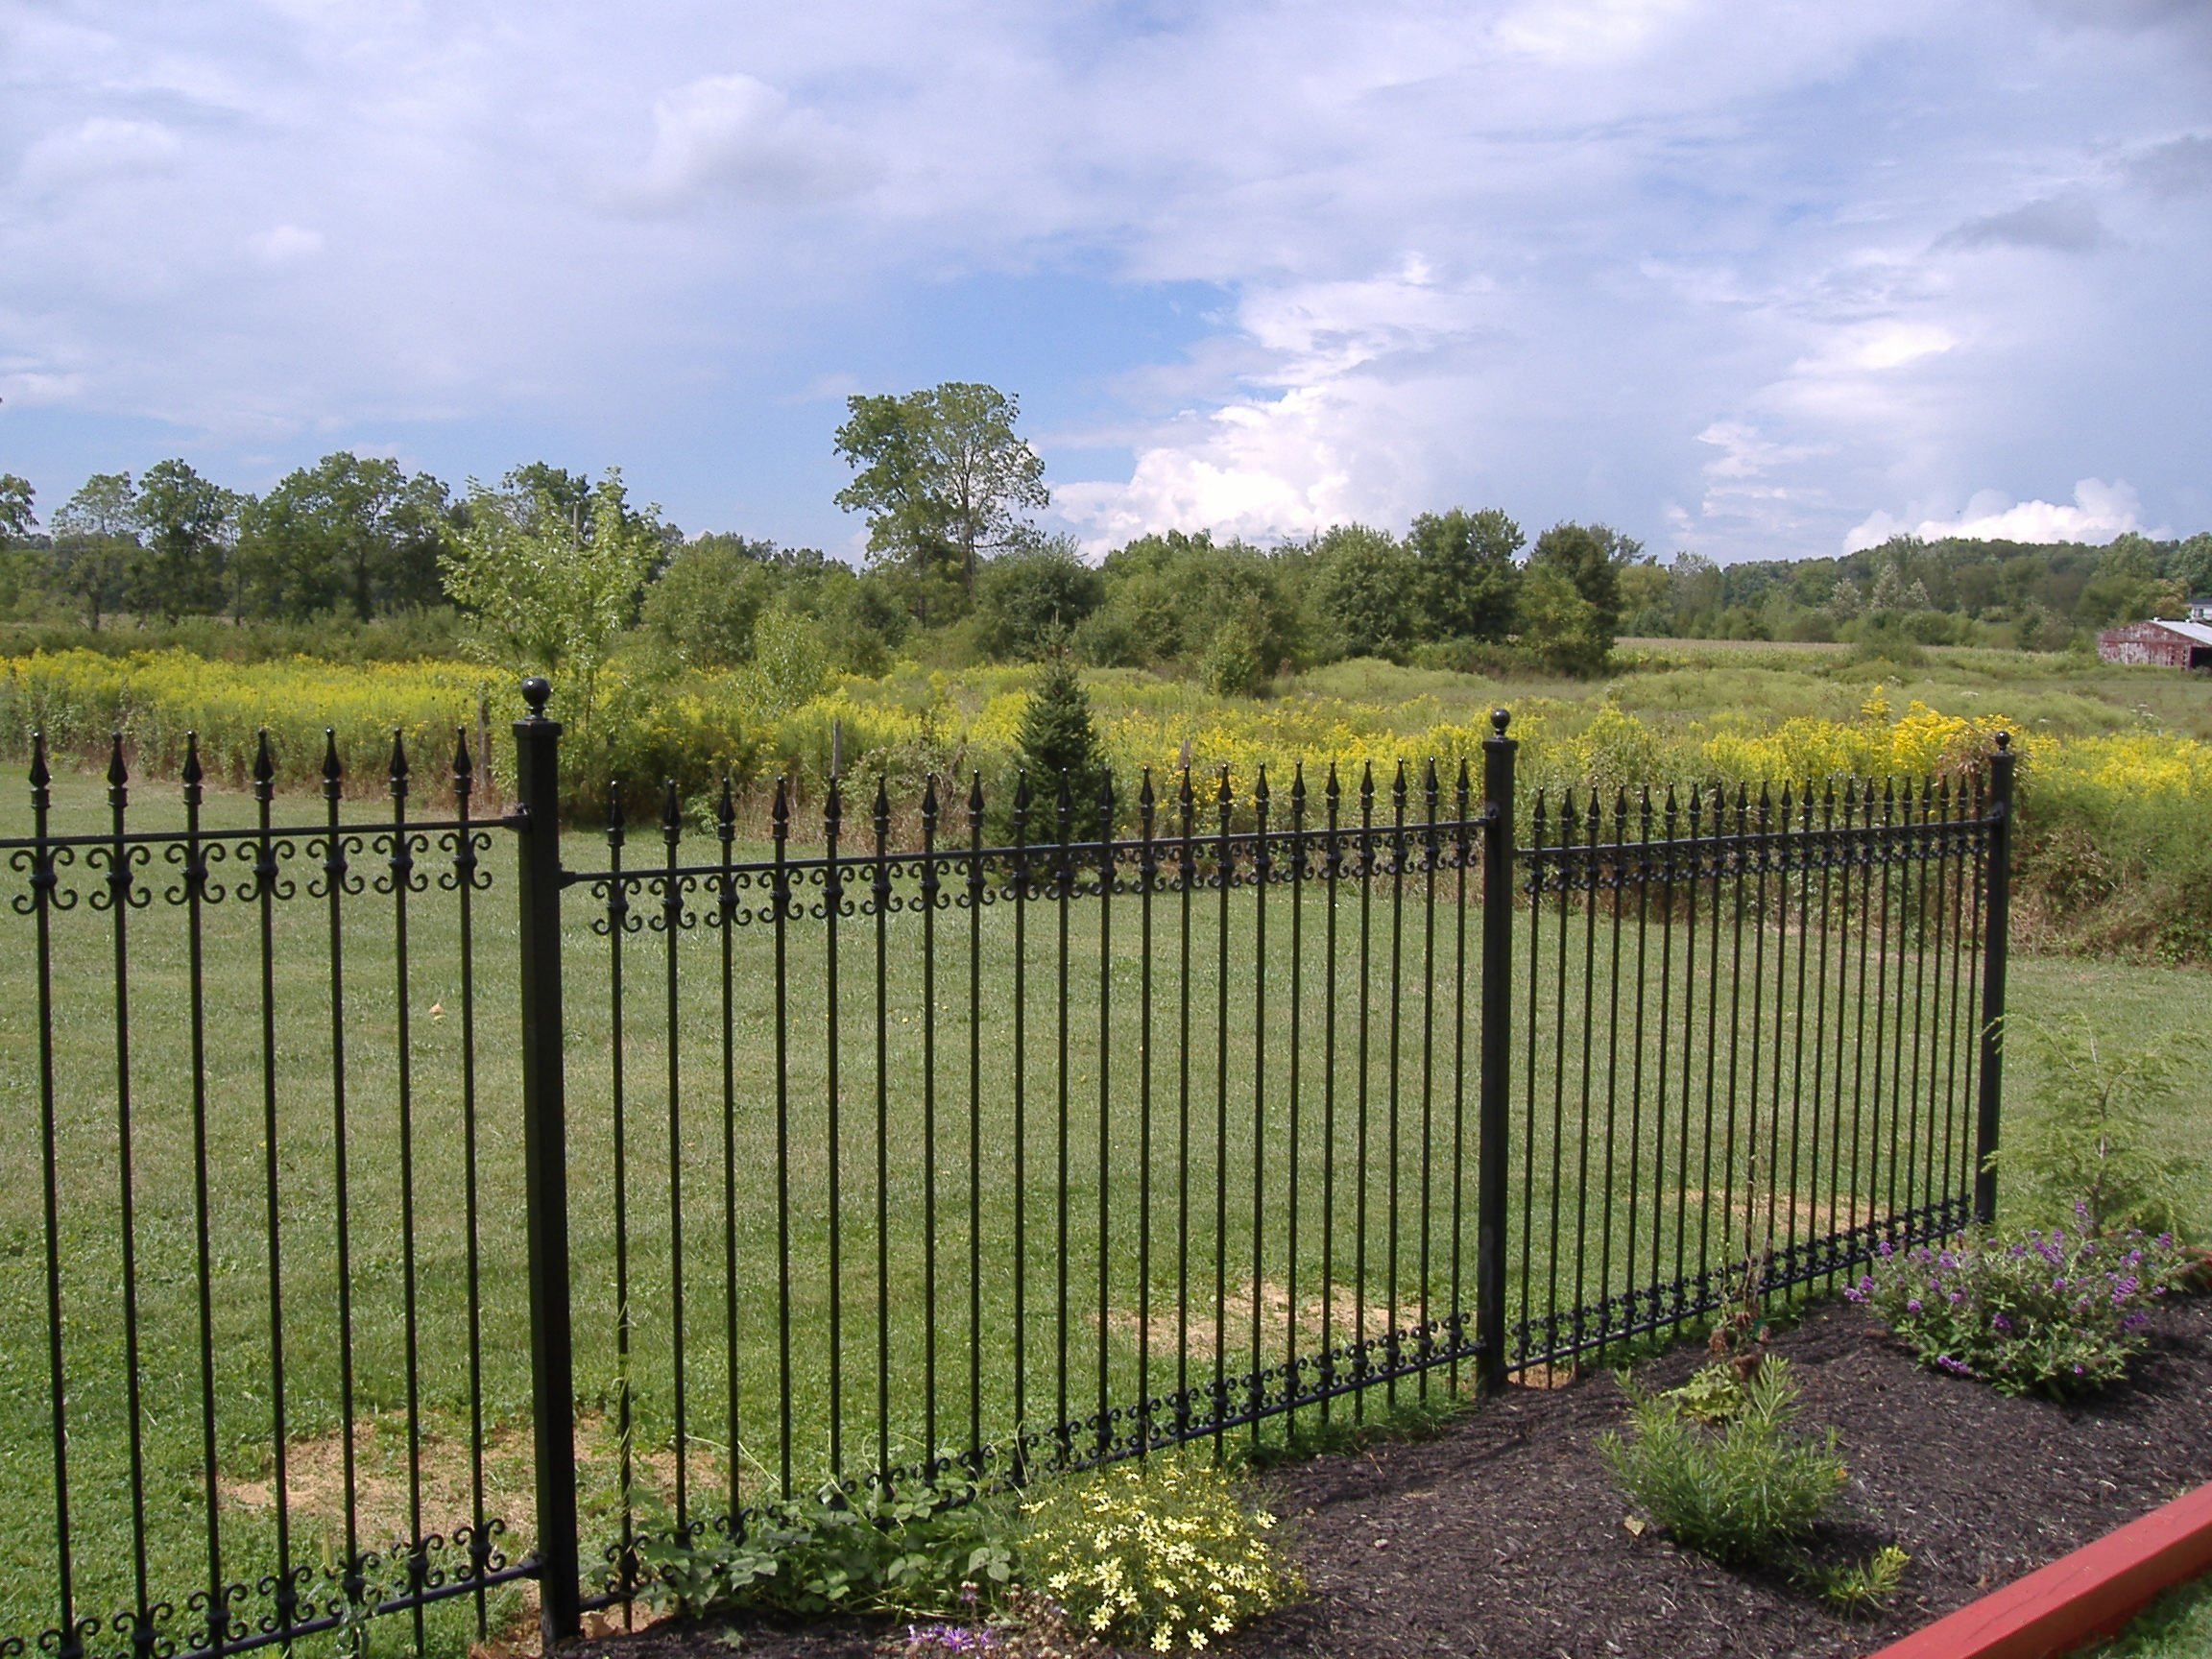 How To Install Iron Fence Or Aluminum Fence On A Hill